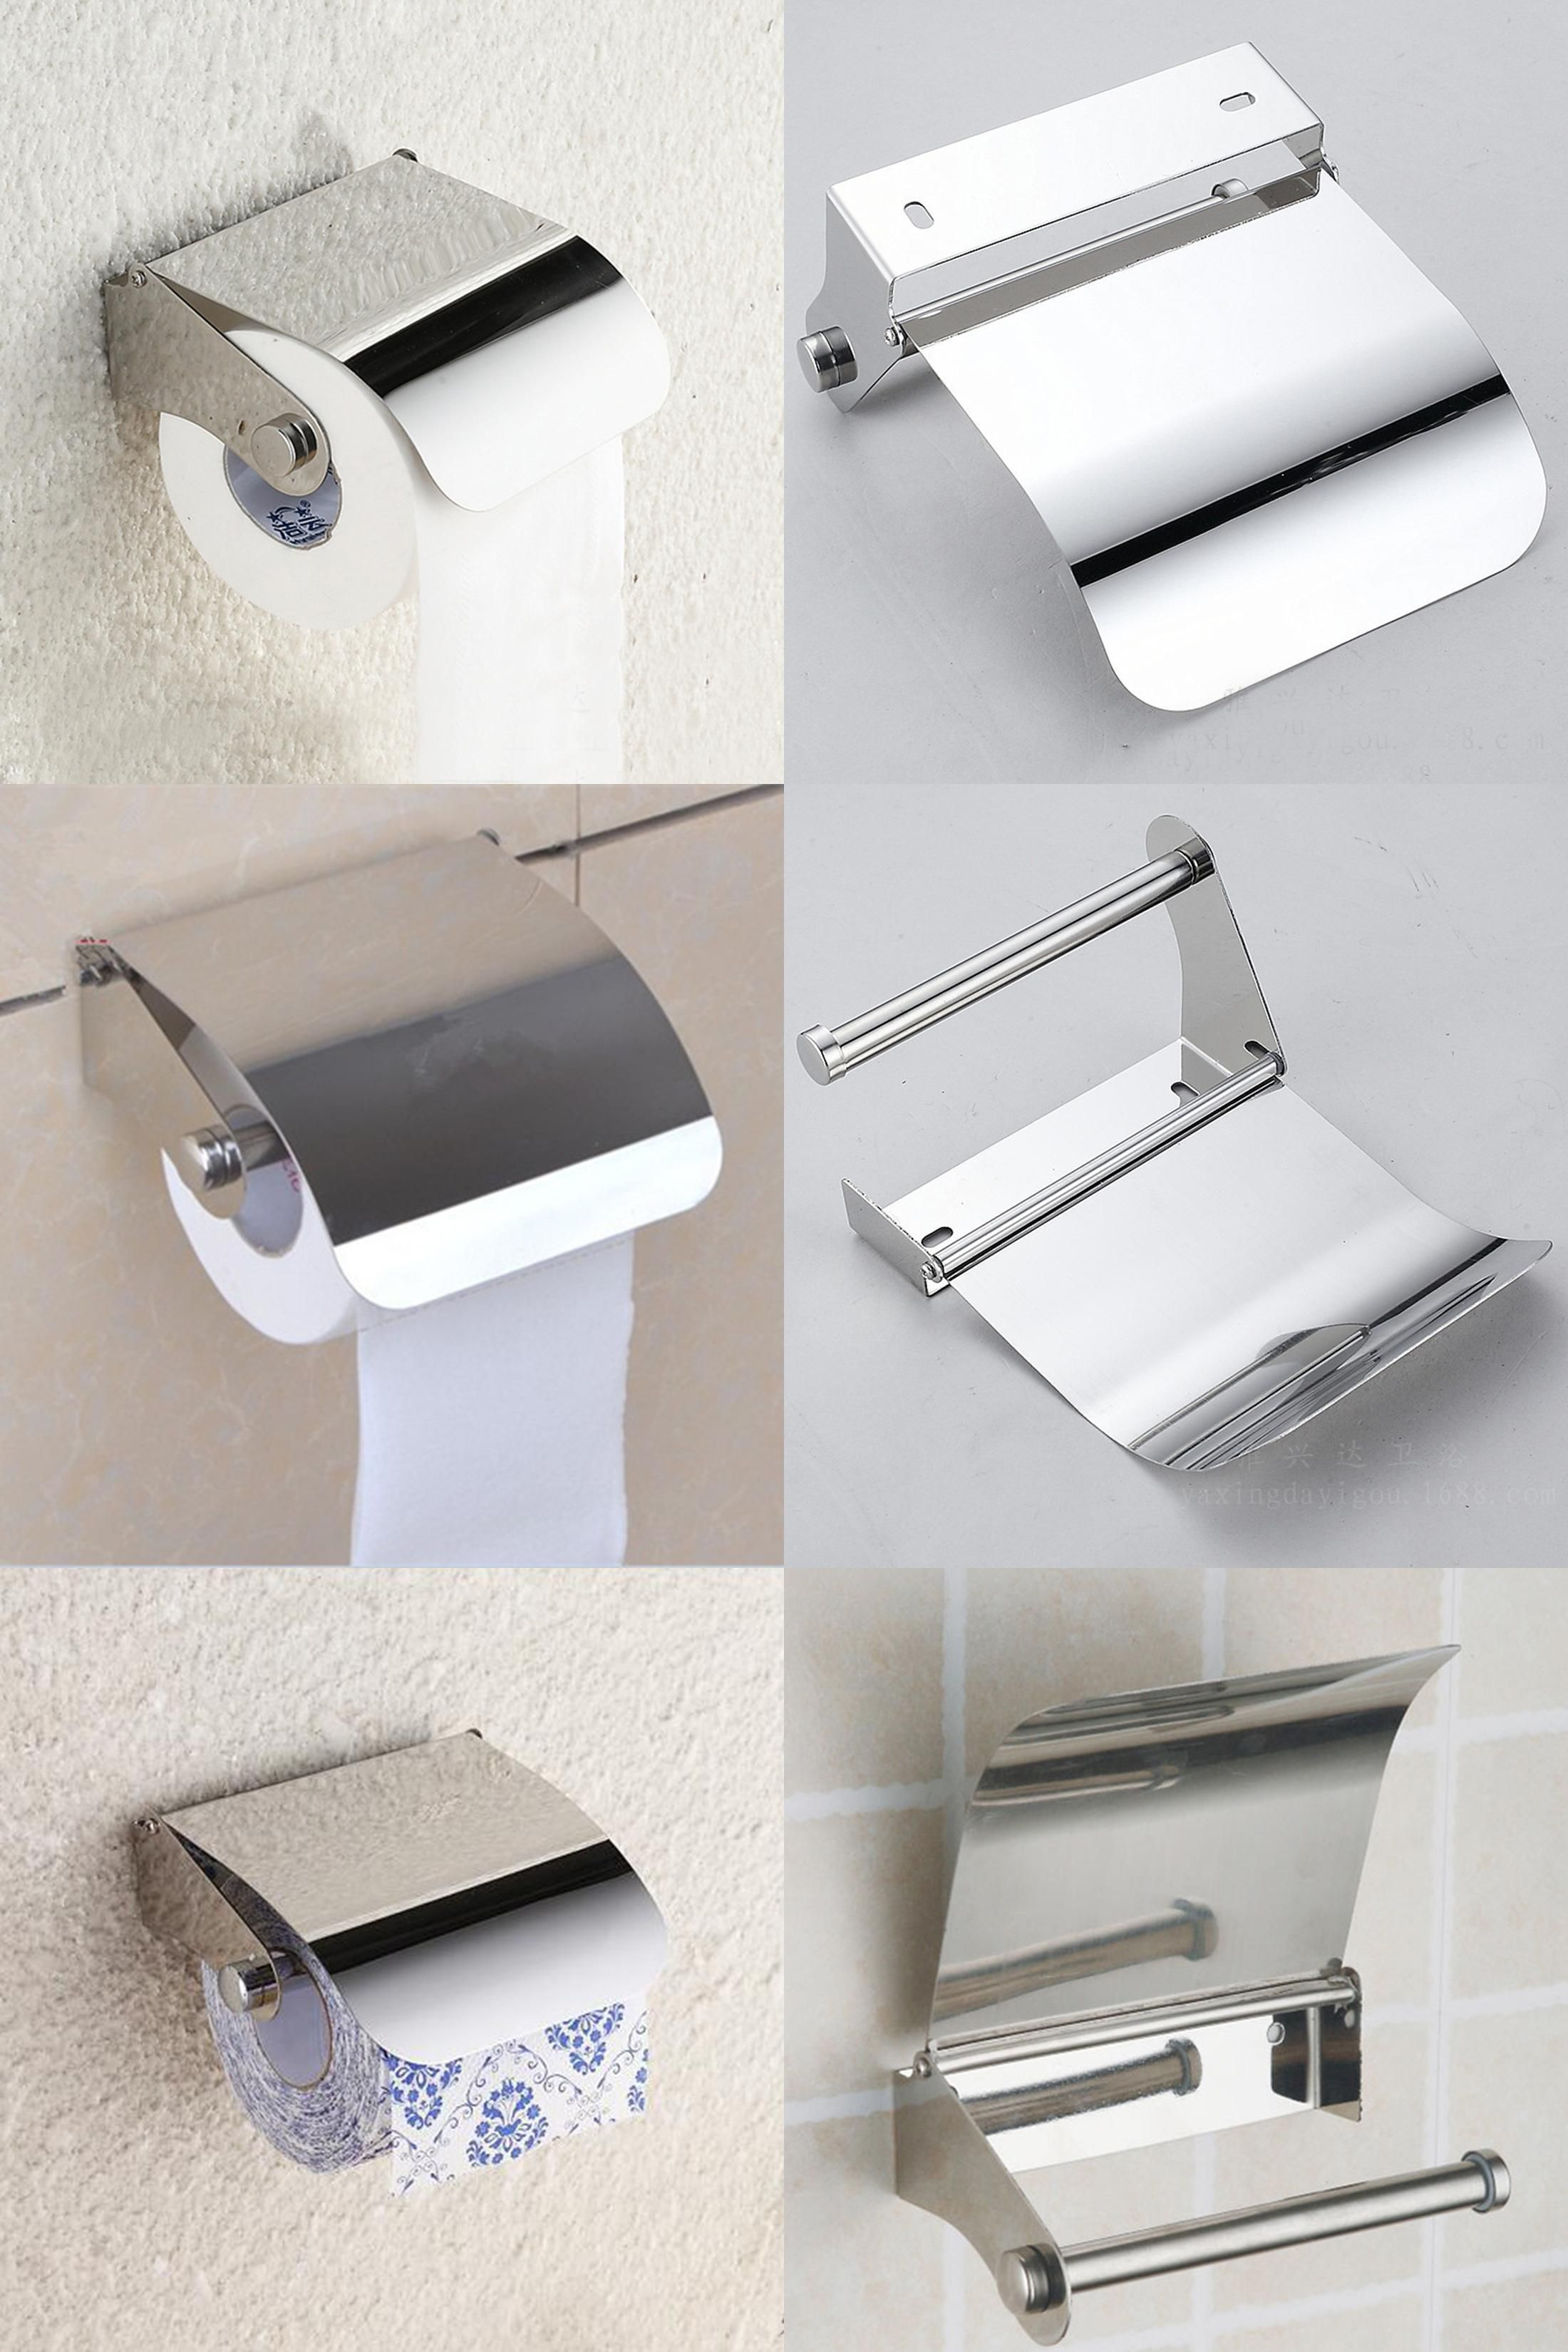 Visit to Buy] Bathroom Accessories Stainless Steel Toilet Paper Roll ...